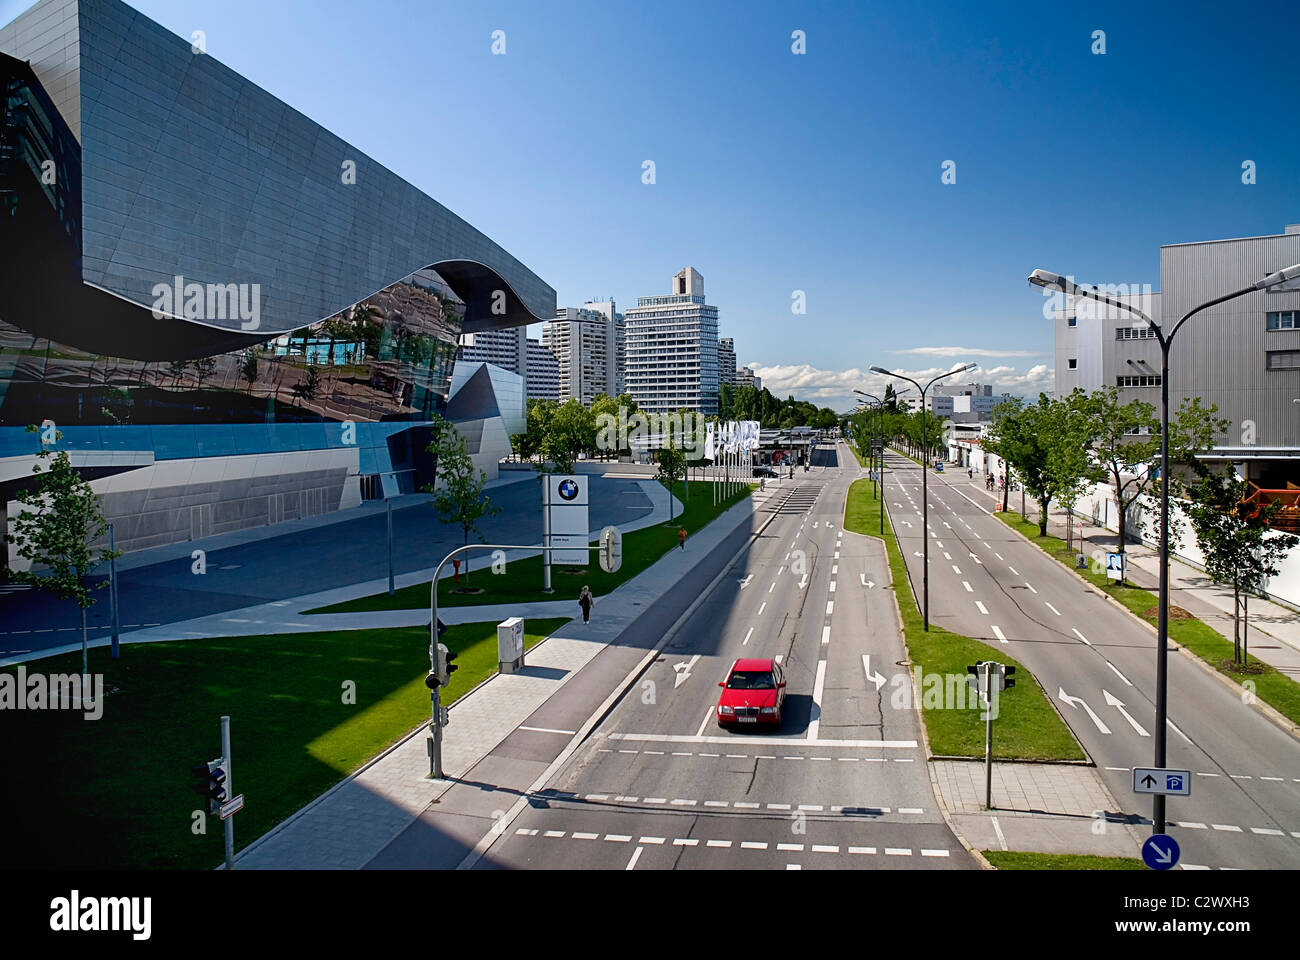 Germany, Bavaria, Munich, BMW Welt, World, on left. This is a BMW showroom across the road from company corporate - Stock Image